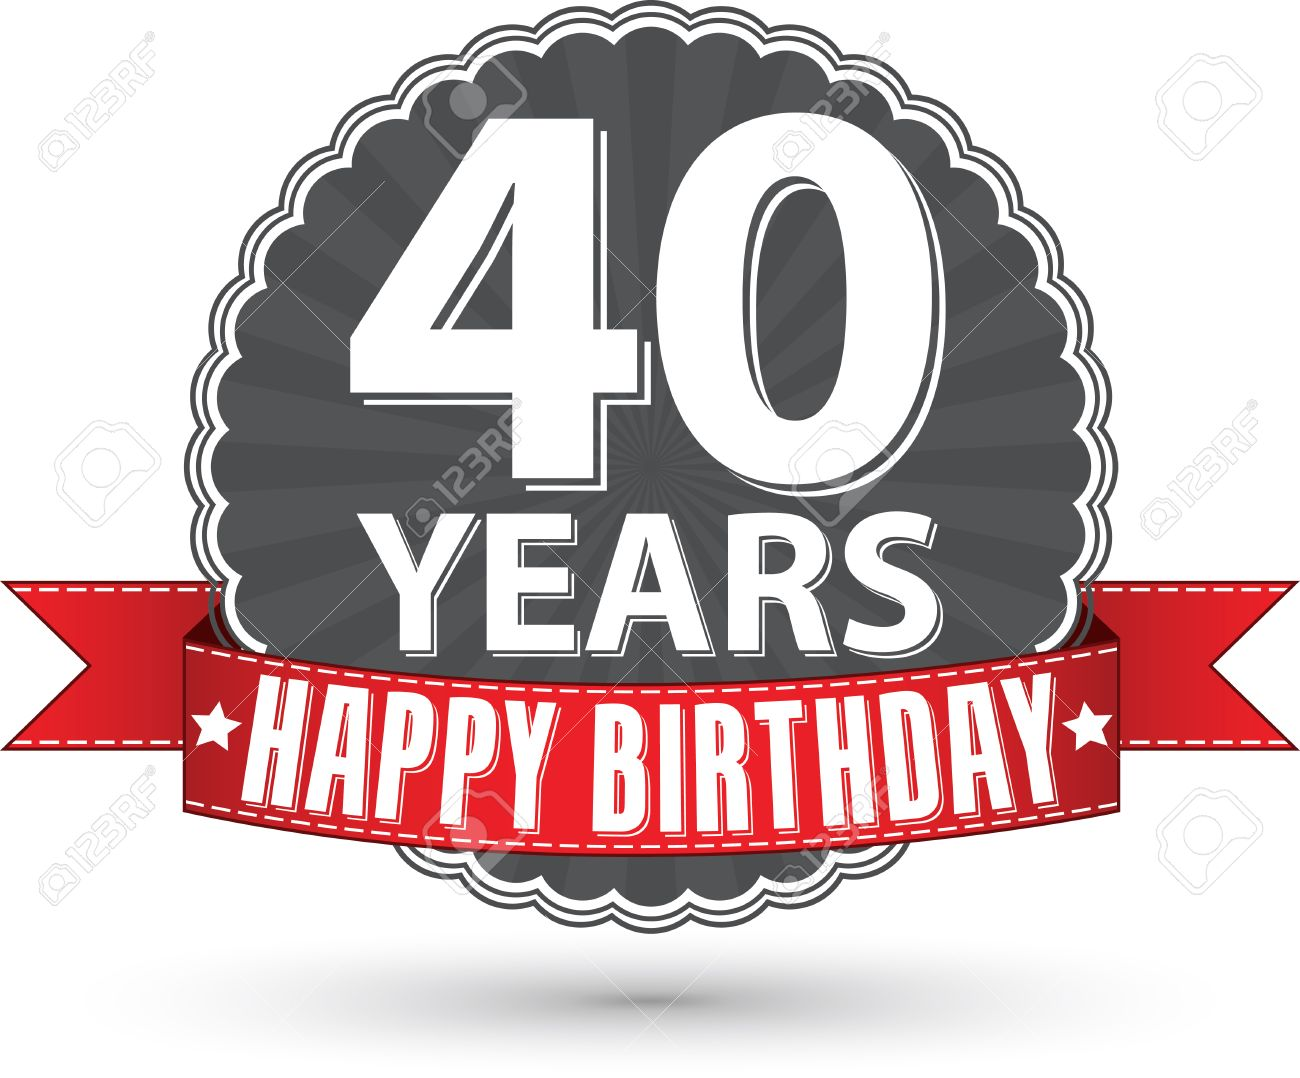 Happy birthday 40 years retro label with red ribbon Stock Vector - 36053658